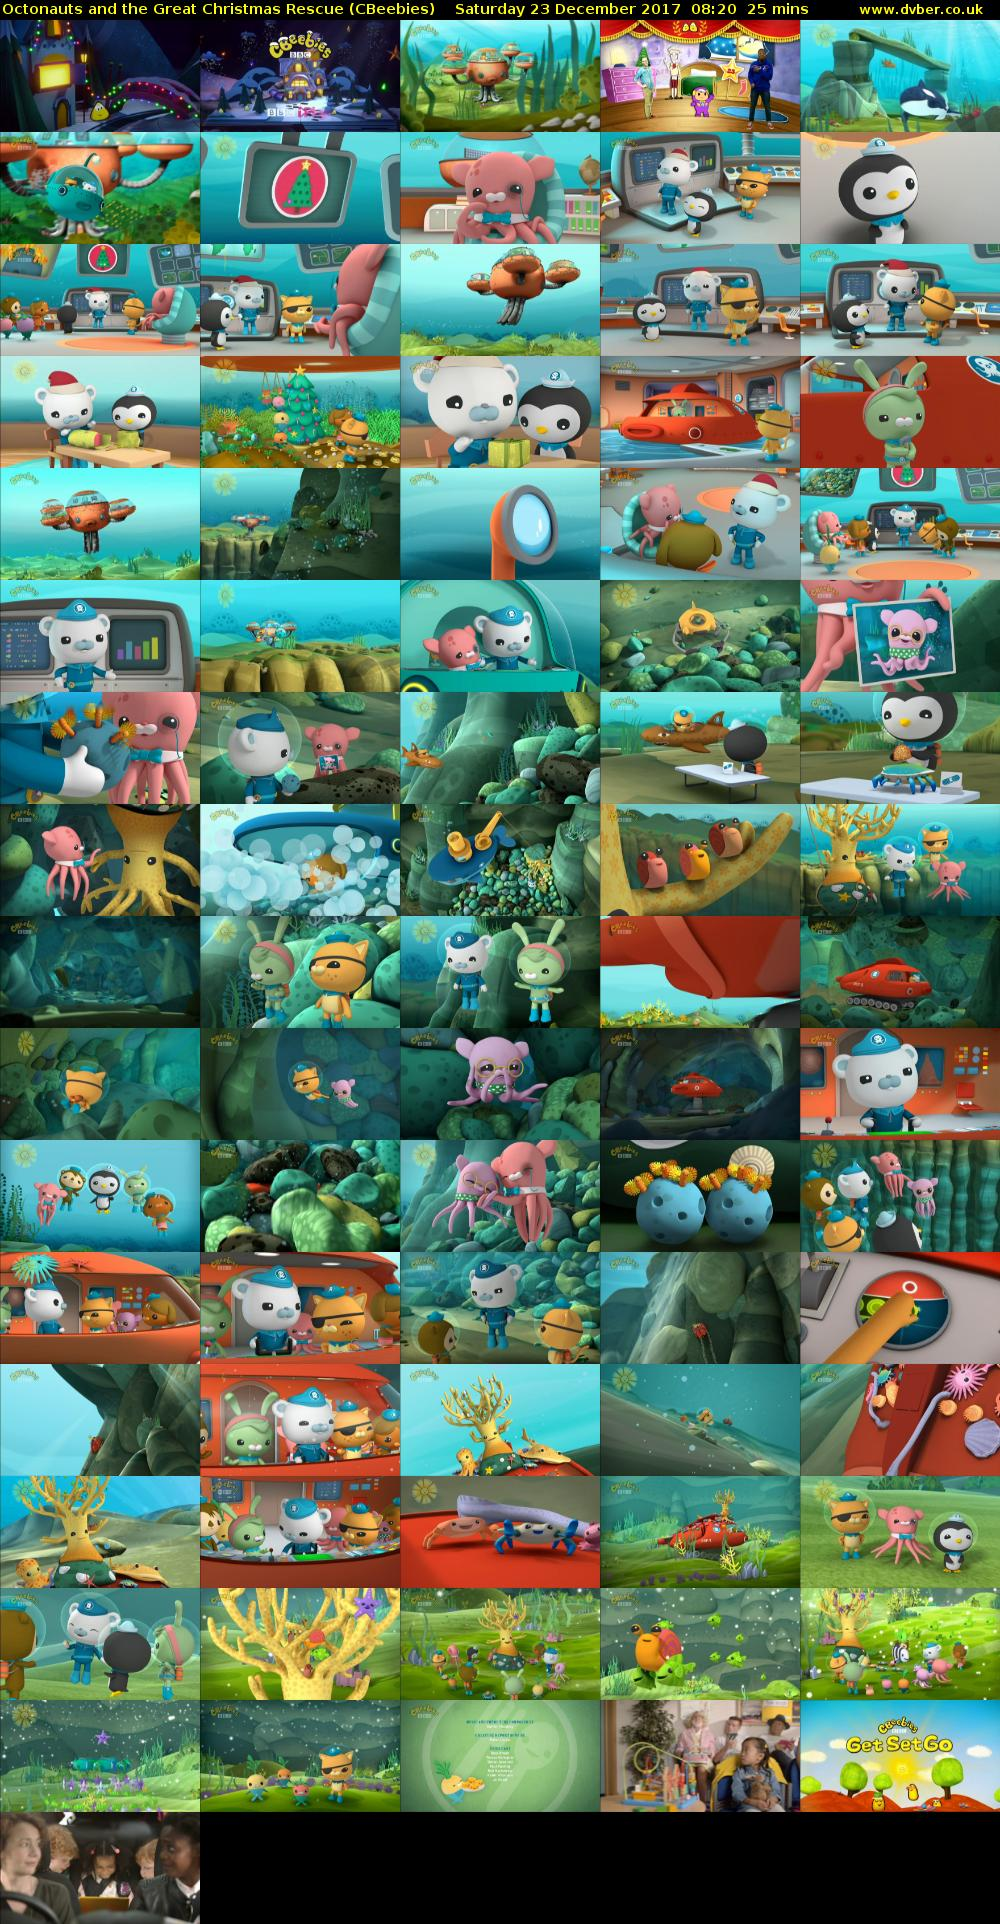 Octonauts and the Great Christmas Rescue (CBeebies) - 2017-12-23-0820